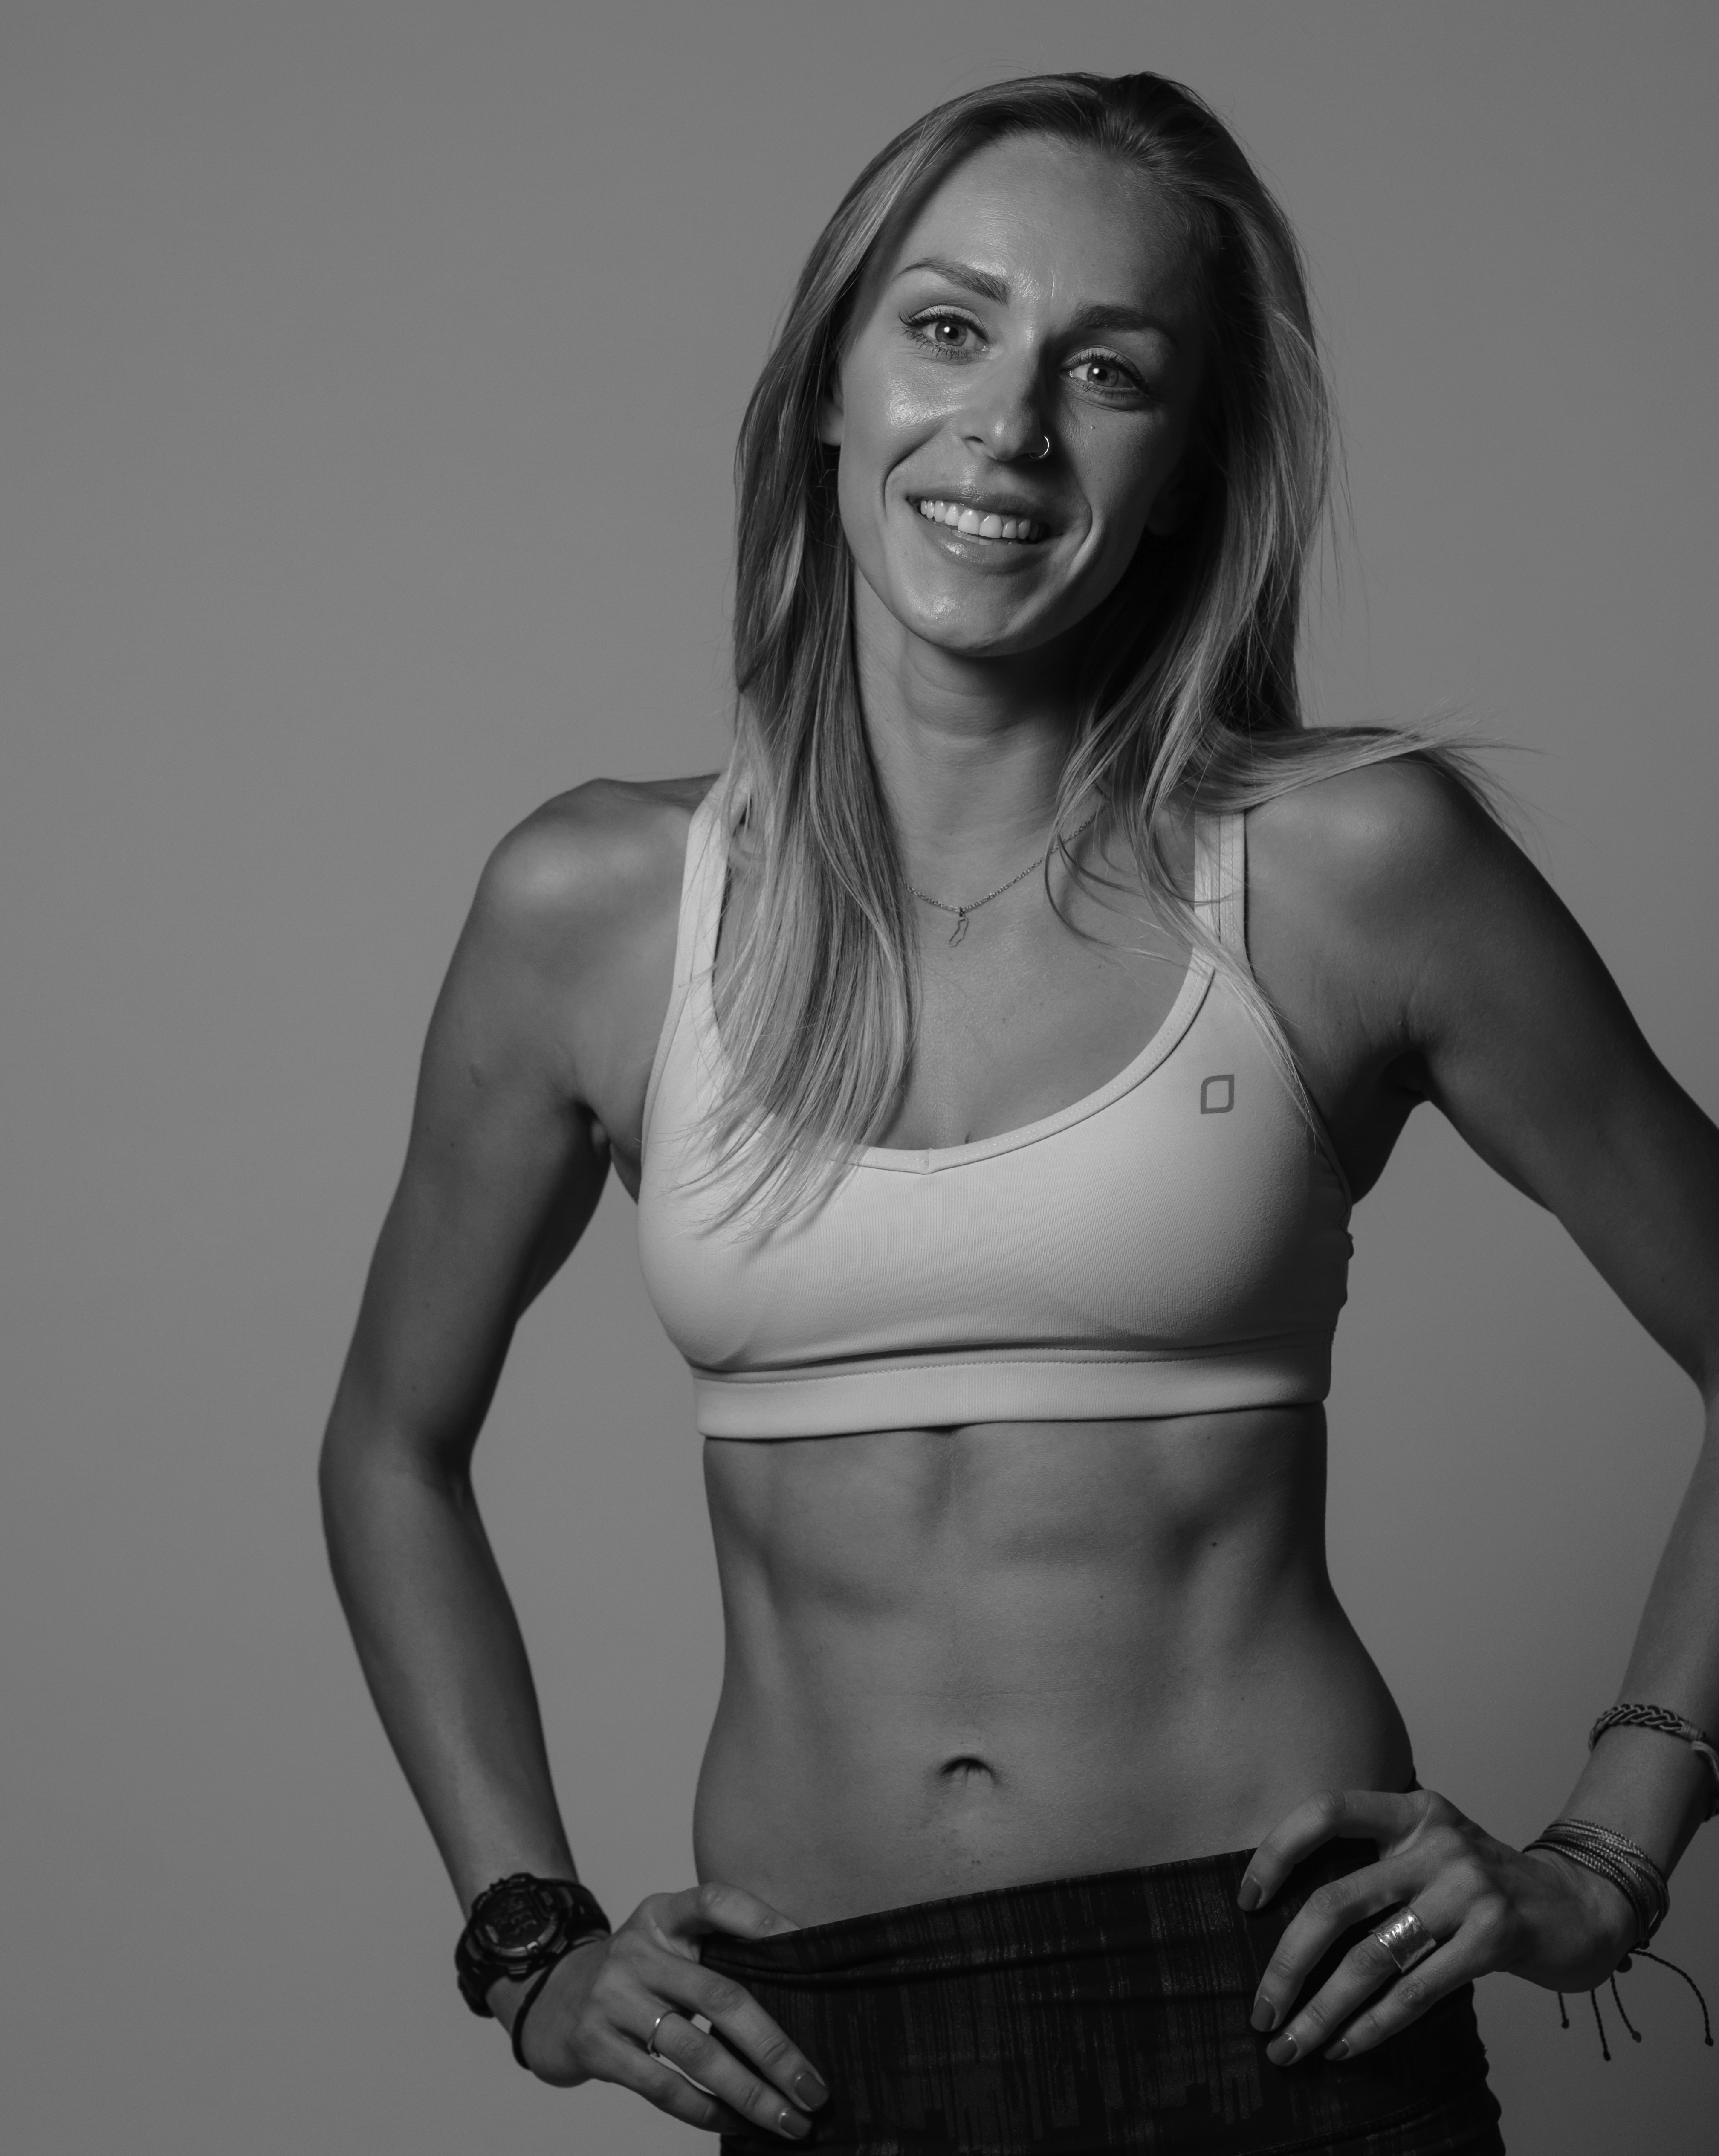 SF's Hottest Trainer 2015: Round 2 Voting, The Women